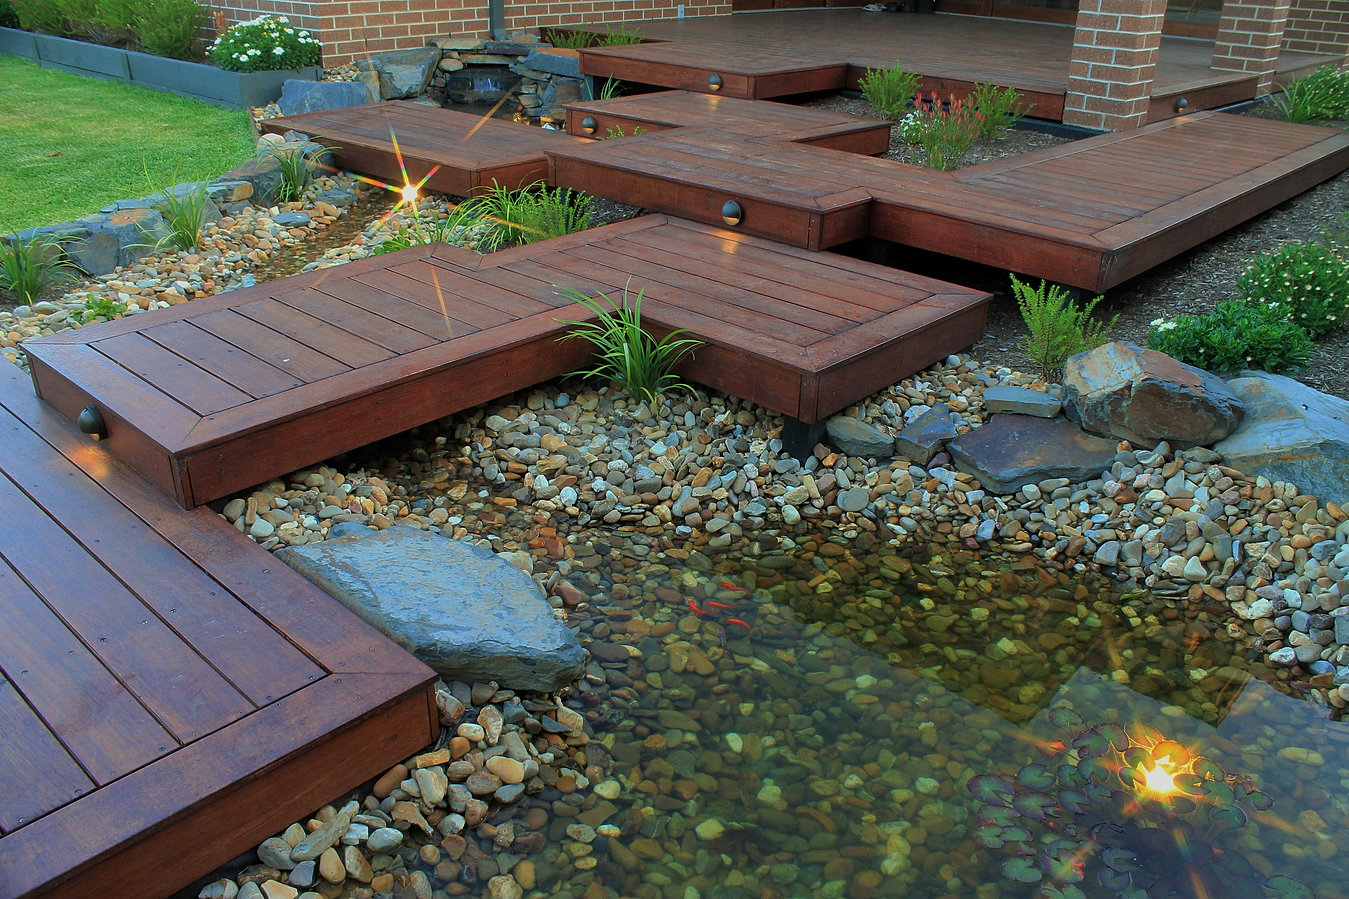 Landscaping melbourne garden design intrinsic landscapes for Landscape construction melbourne